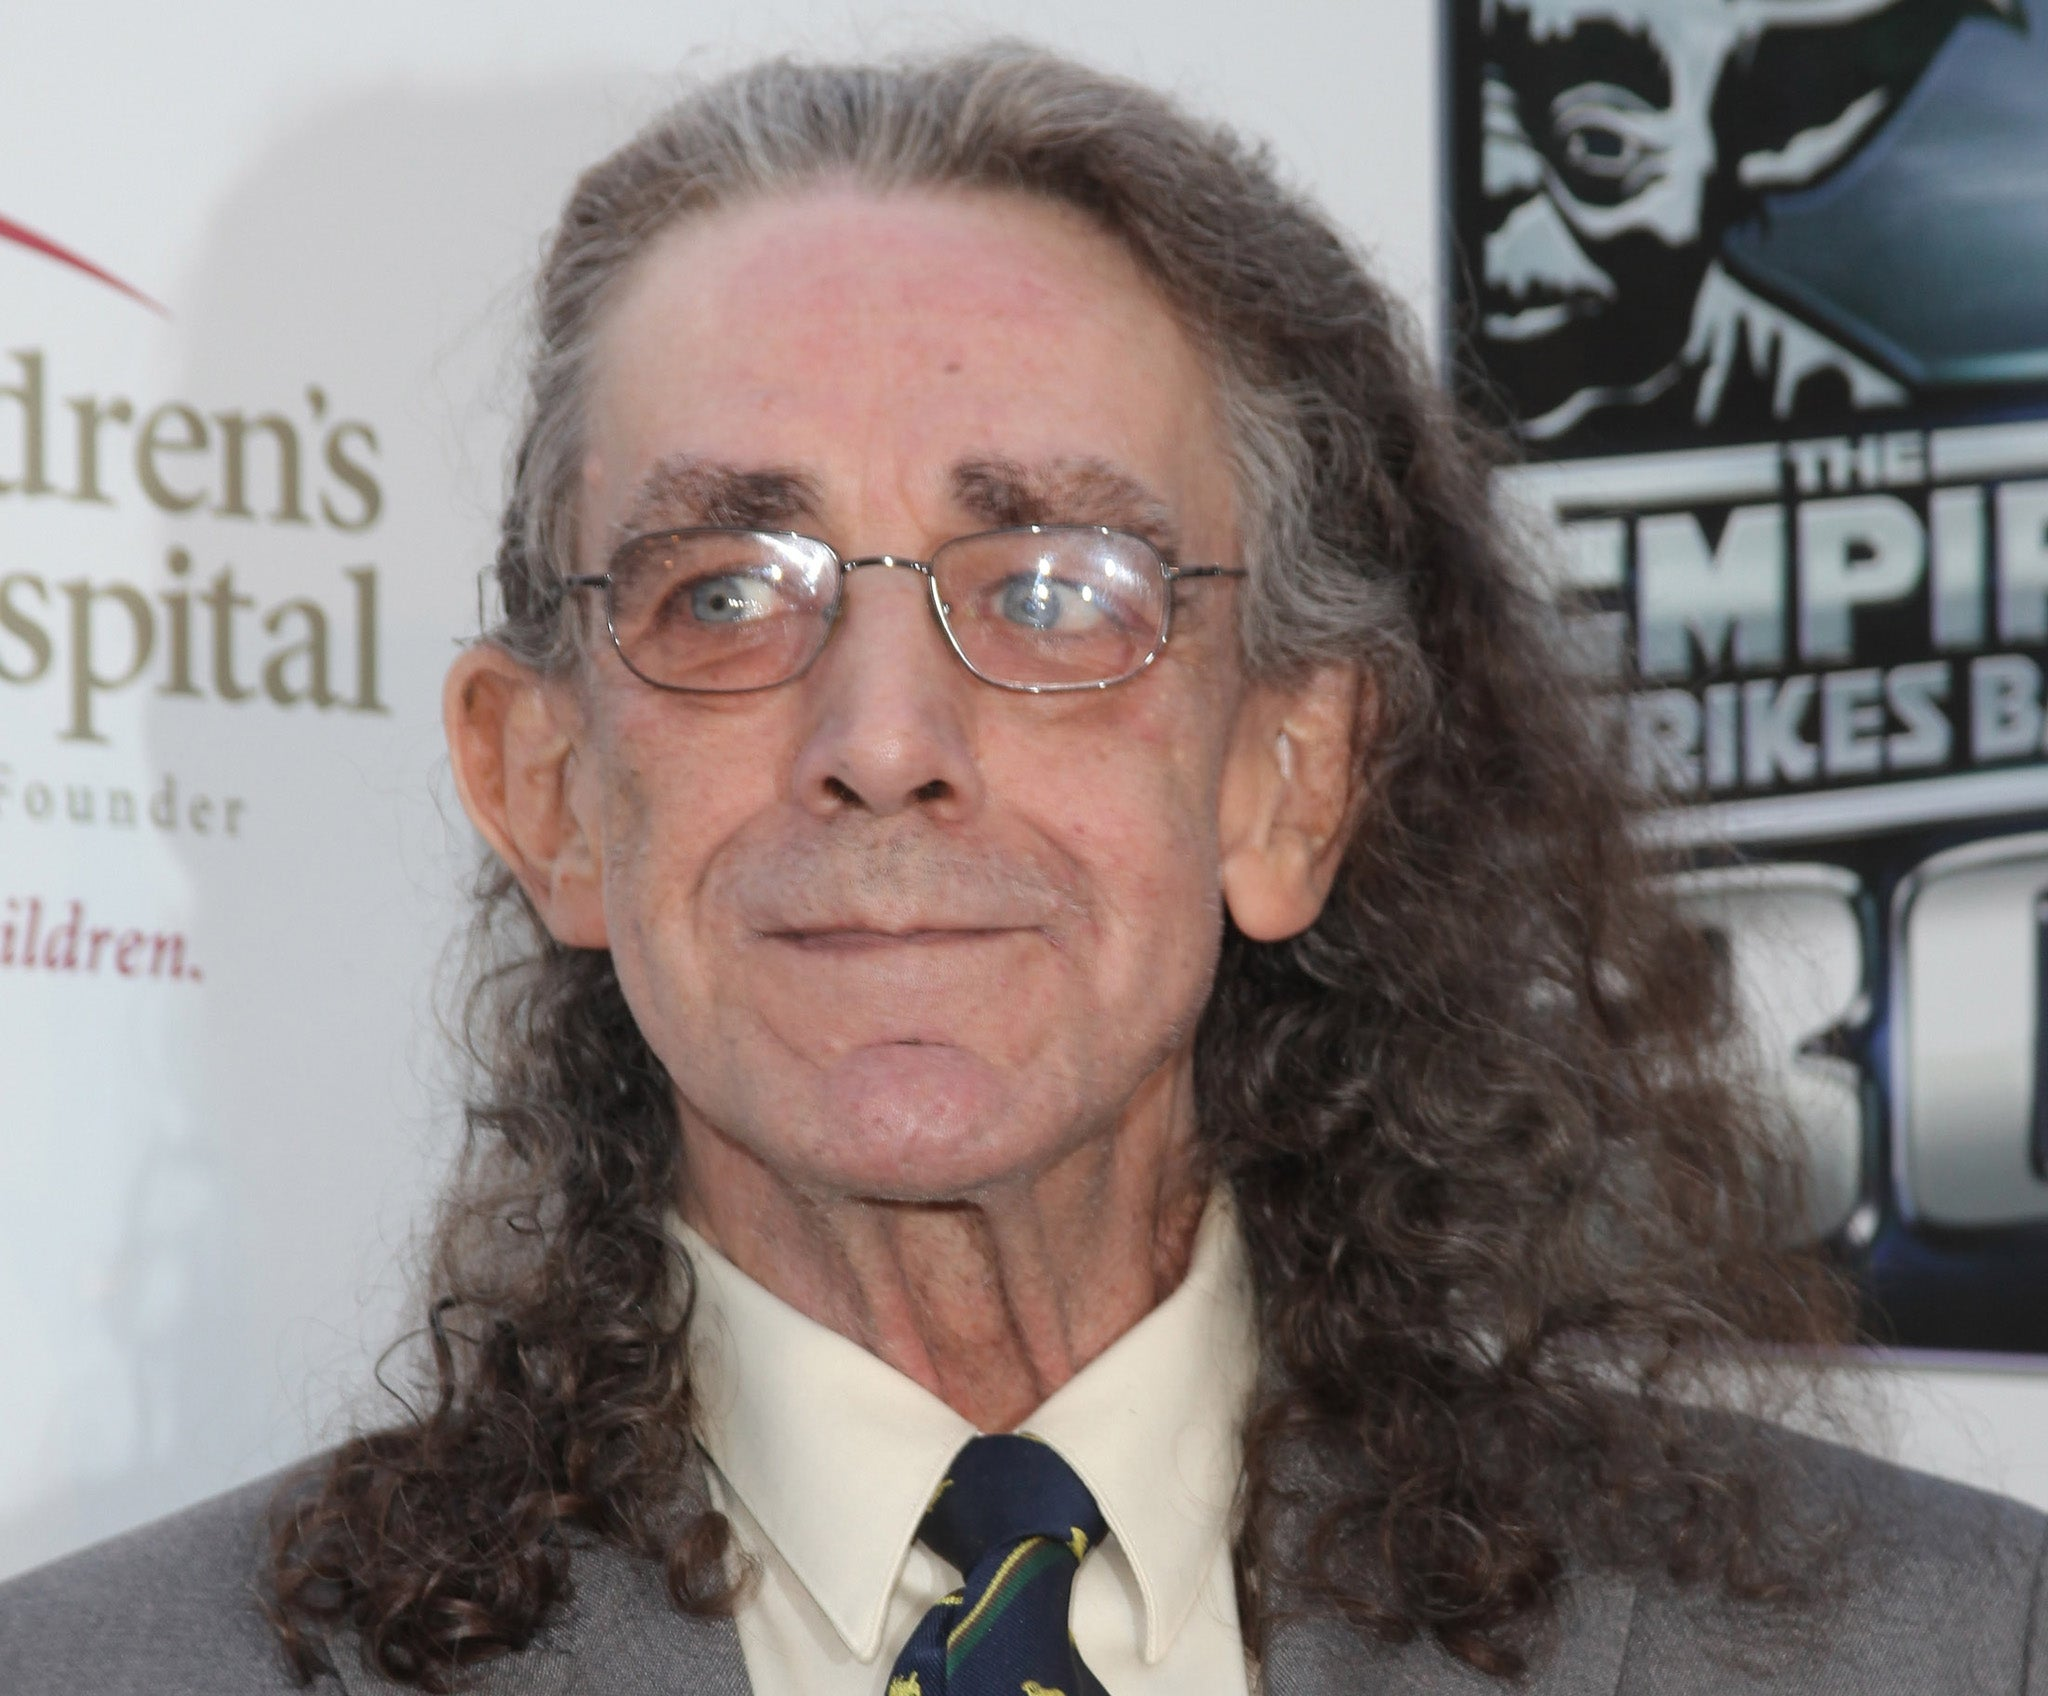 peter mayhew photospeter mayhew young, peter mayhew harrison ford, peter mayhew instagram, peter mayhew height, peter mayhew site, peter mayhew age, peter mayhew reddit, peter mayhew disability, peter mayhew twitter, peter mayhew interview, peter mayhew, peter mayhew net worth, peter mayhew chewbacca roar, peter mayhew 1977, peter mayhew wiki, peter mayhew star wars, peter mayhew 2015, peter mayhew photos, peter mayhew family, peter mayhew taille